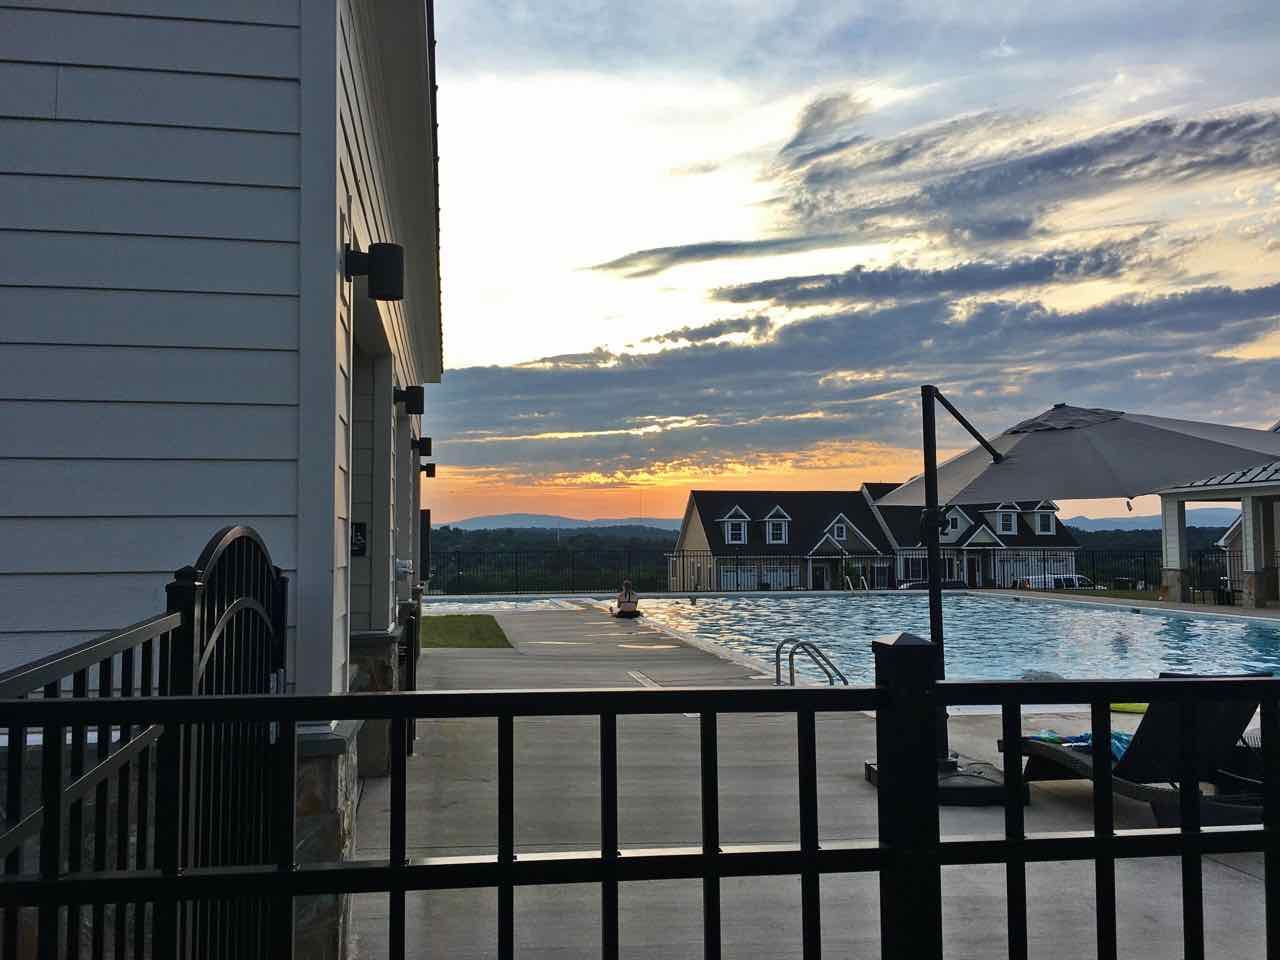 Cascadia pool view during sunset.